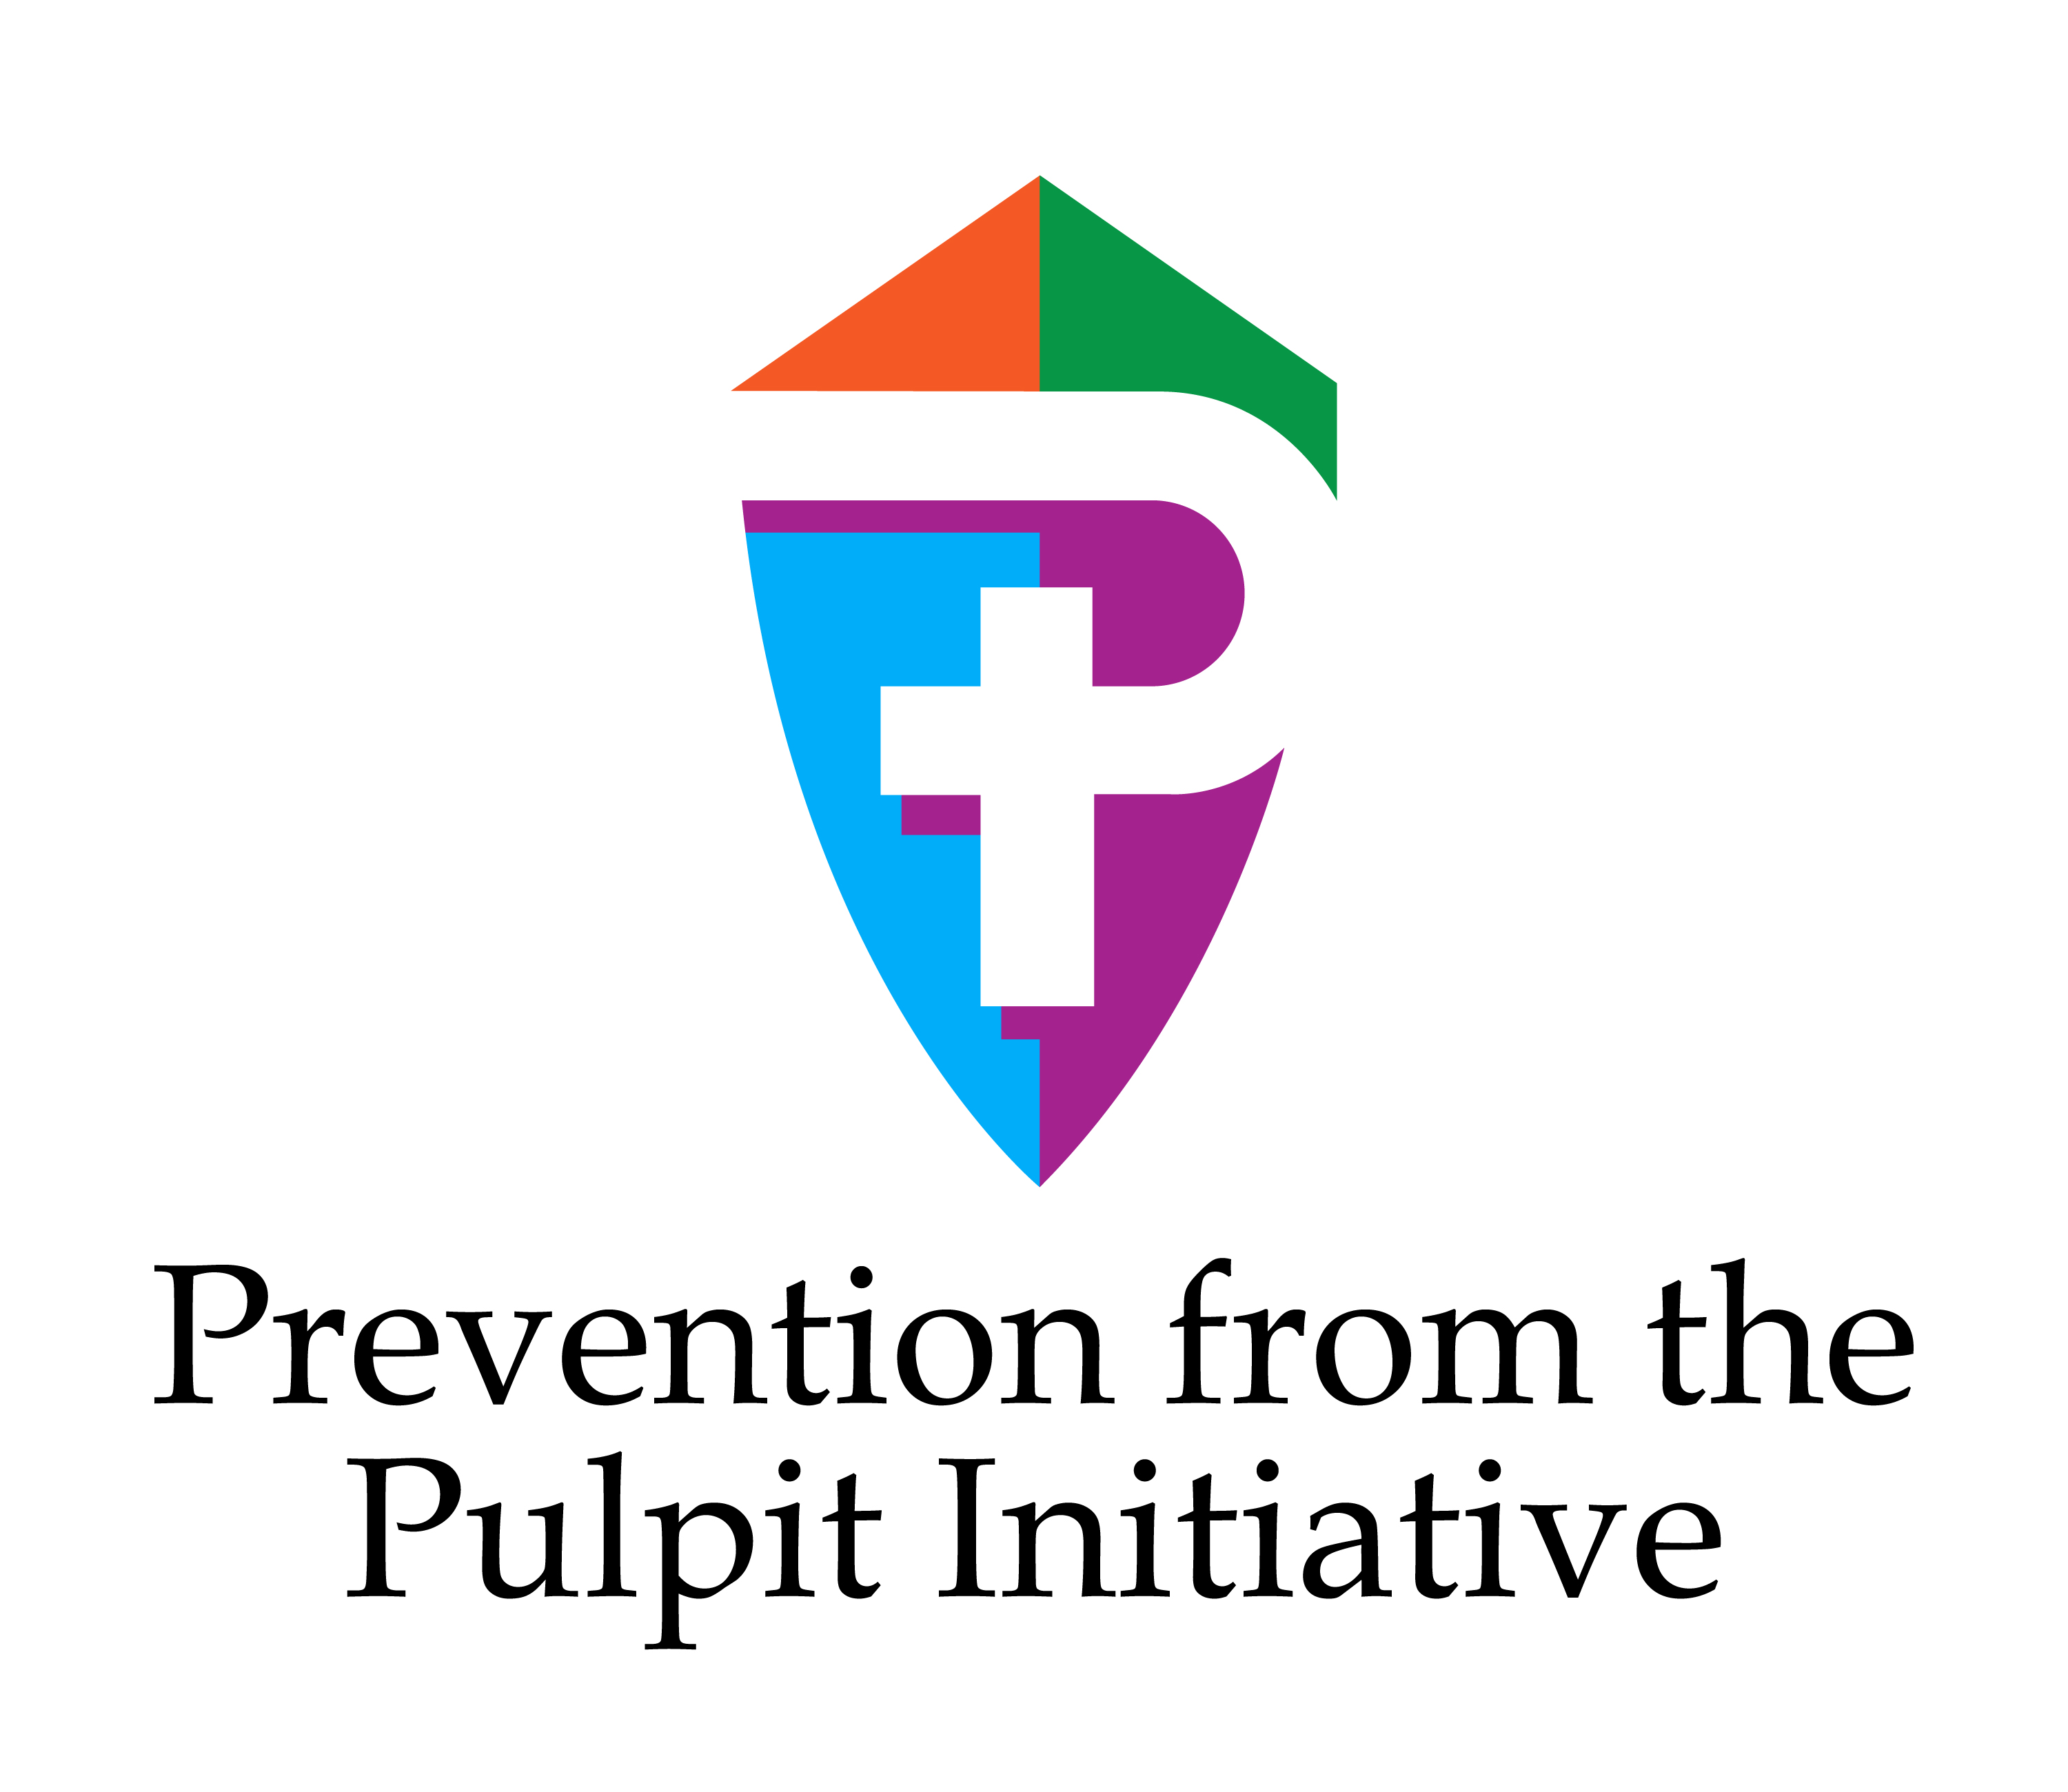 PreventionfromthePulpitInitiative3-1